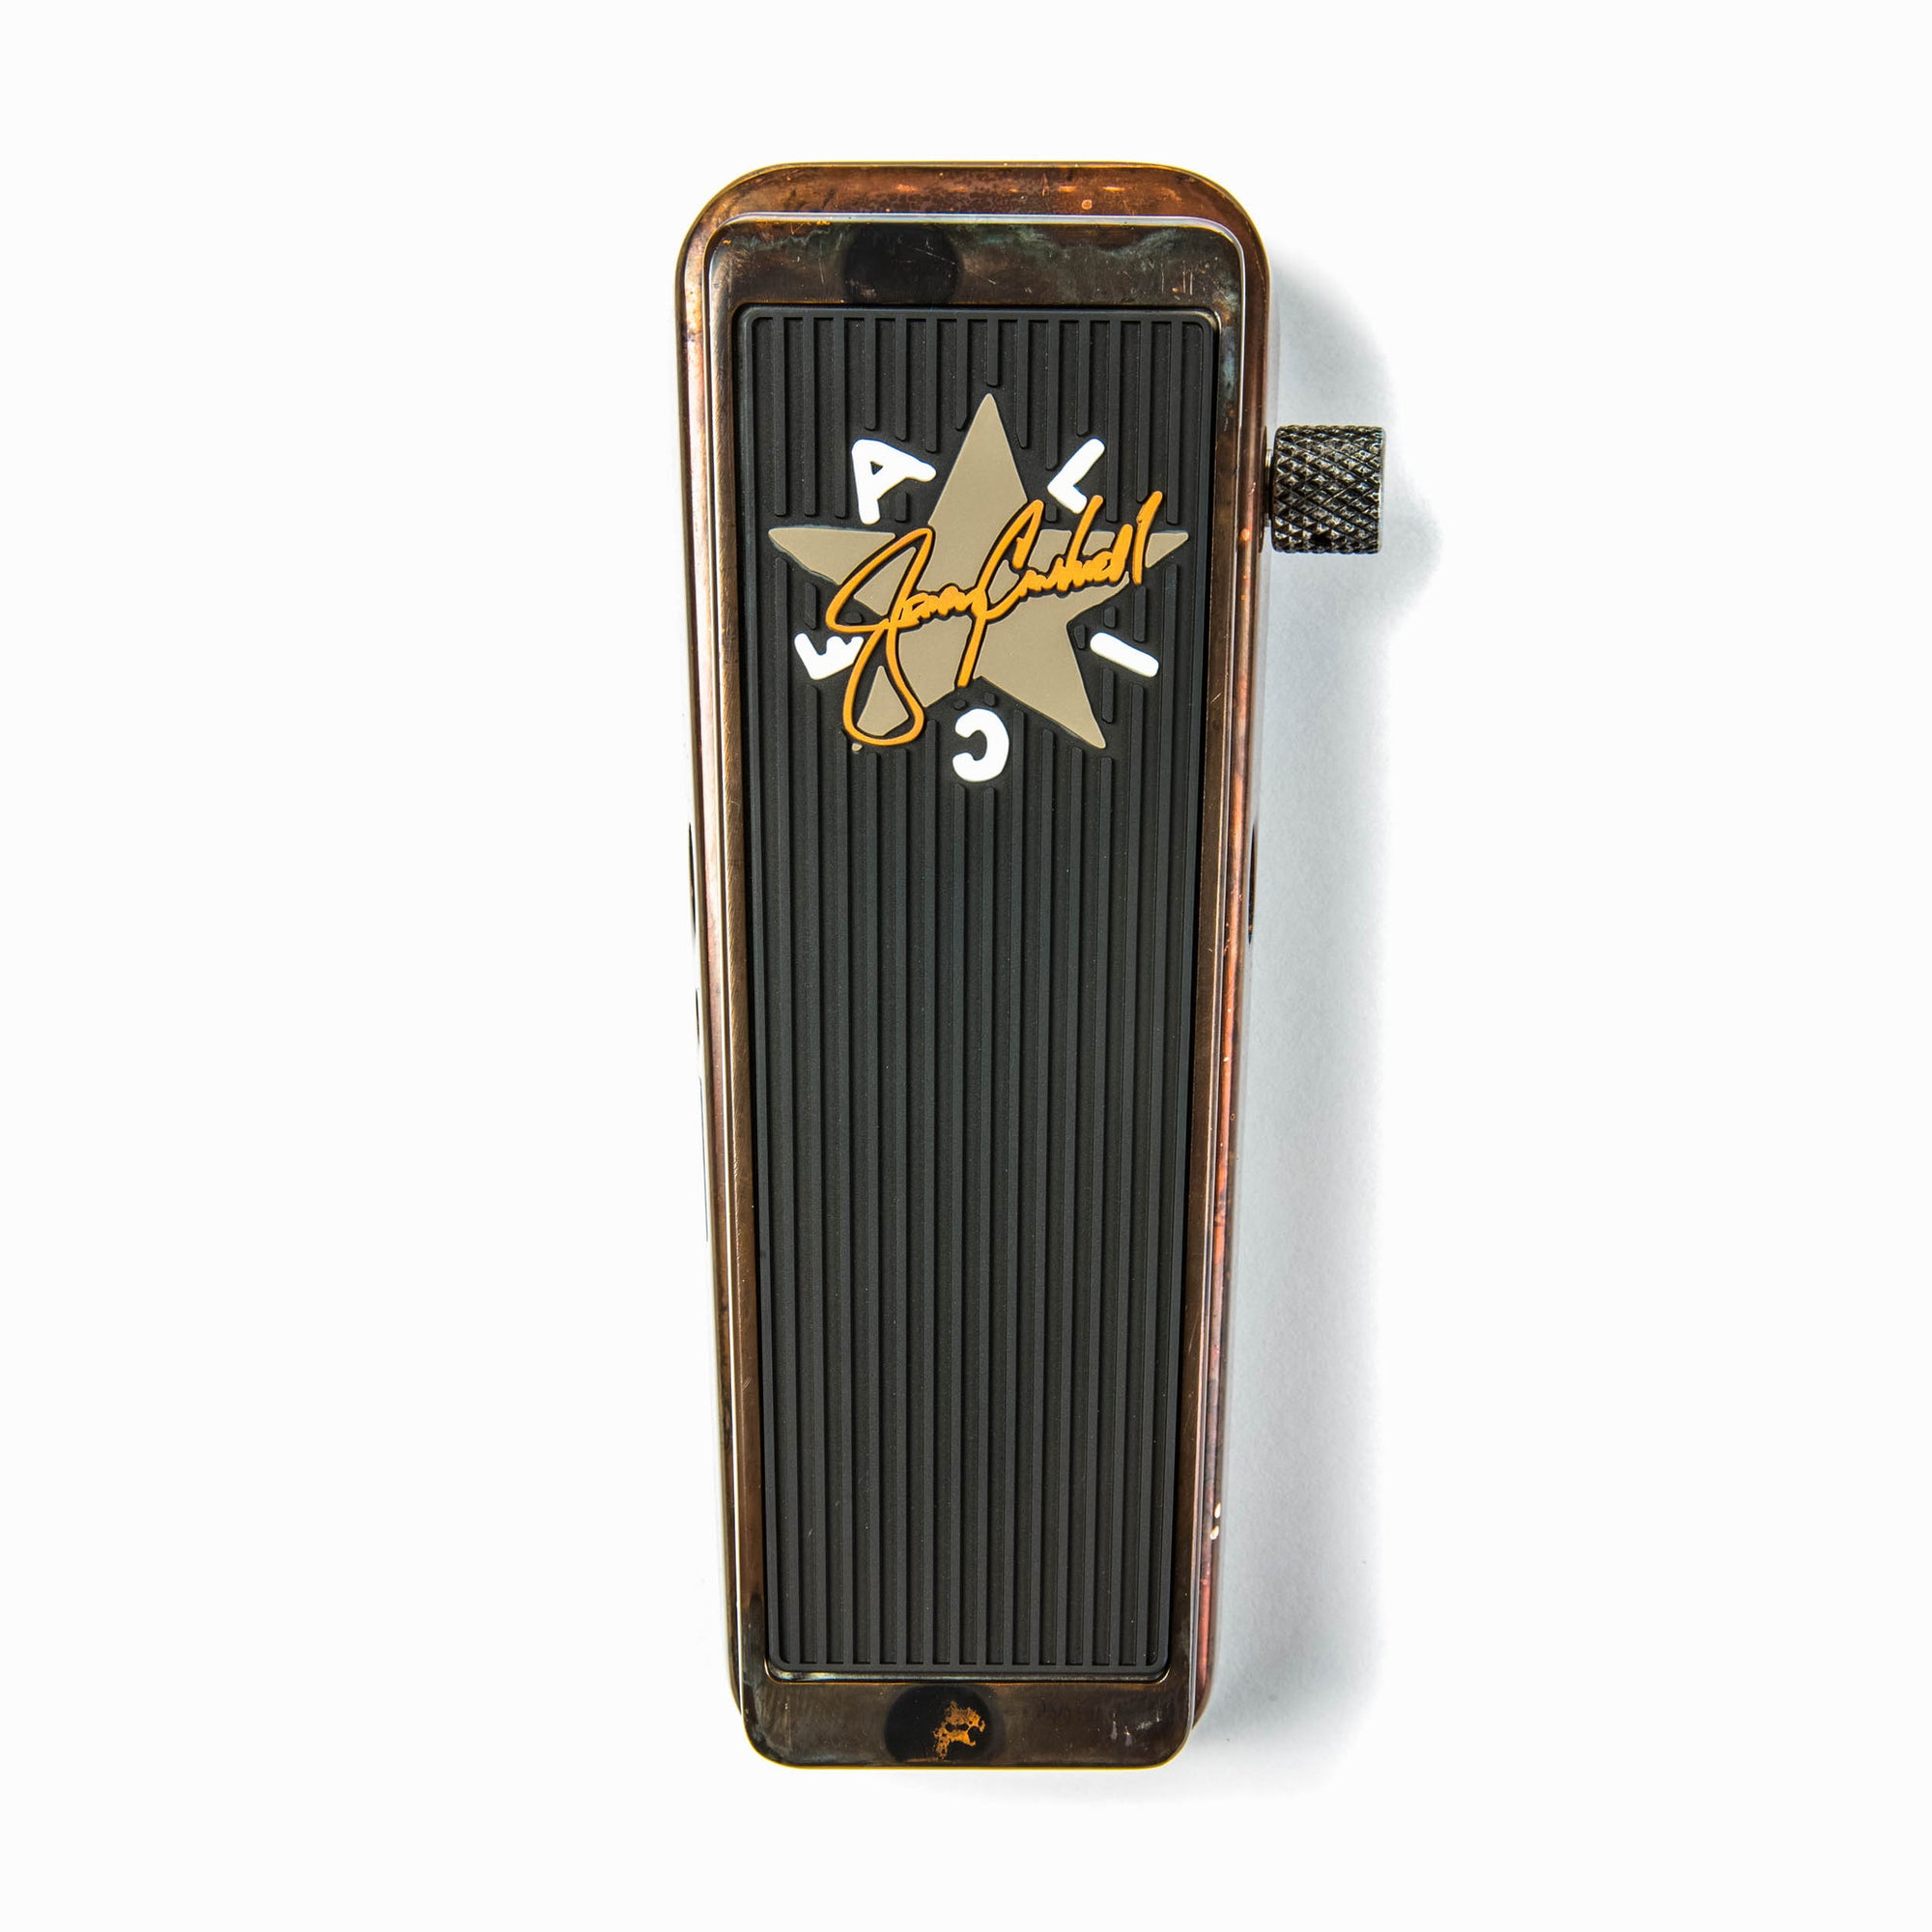 Dunlop JC95 Jerry Cantrell Signature Cry Baby Wah Pedal